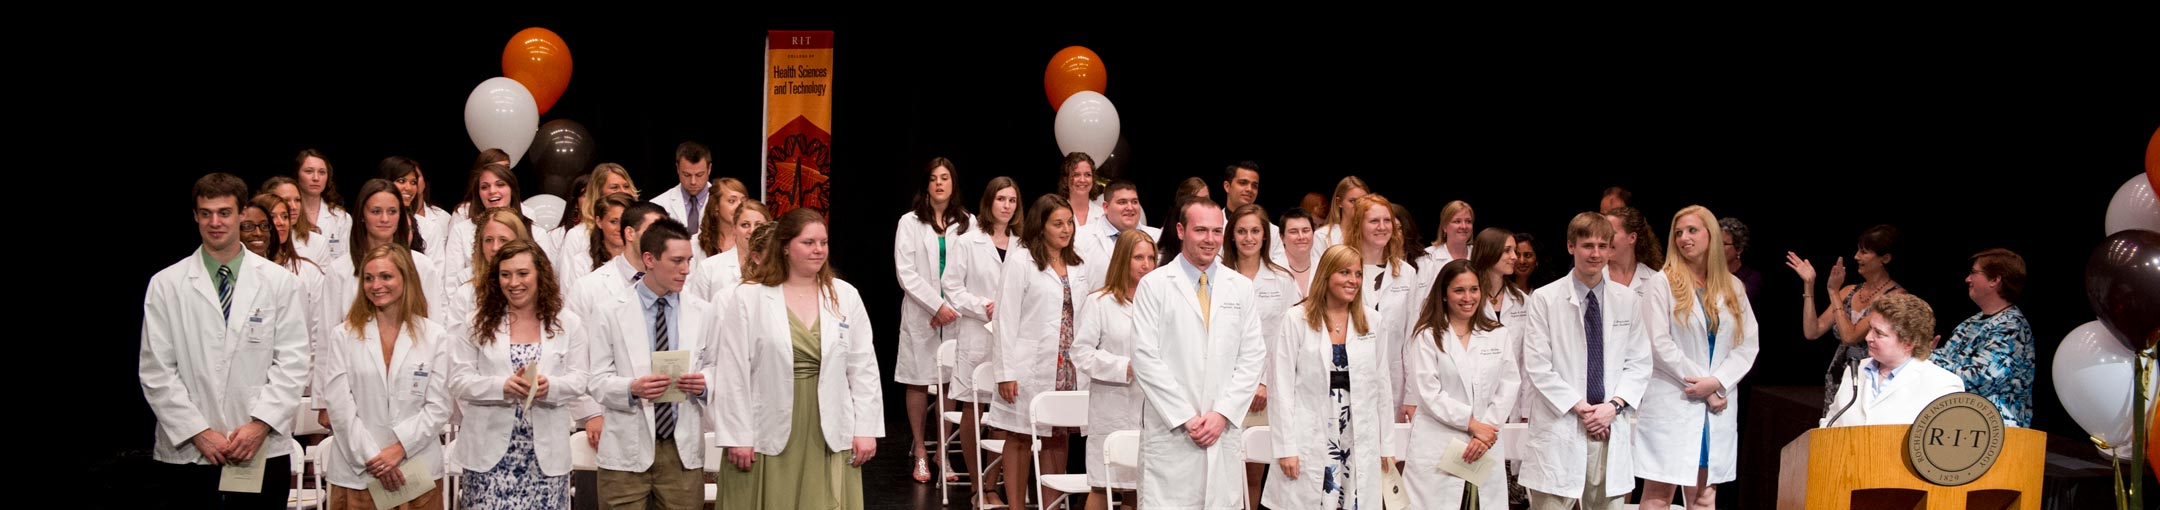 A class in white coats standing at a ceremony